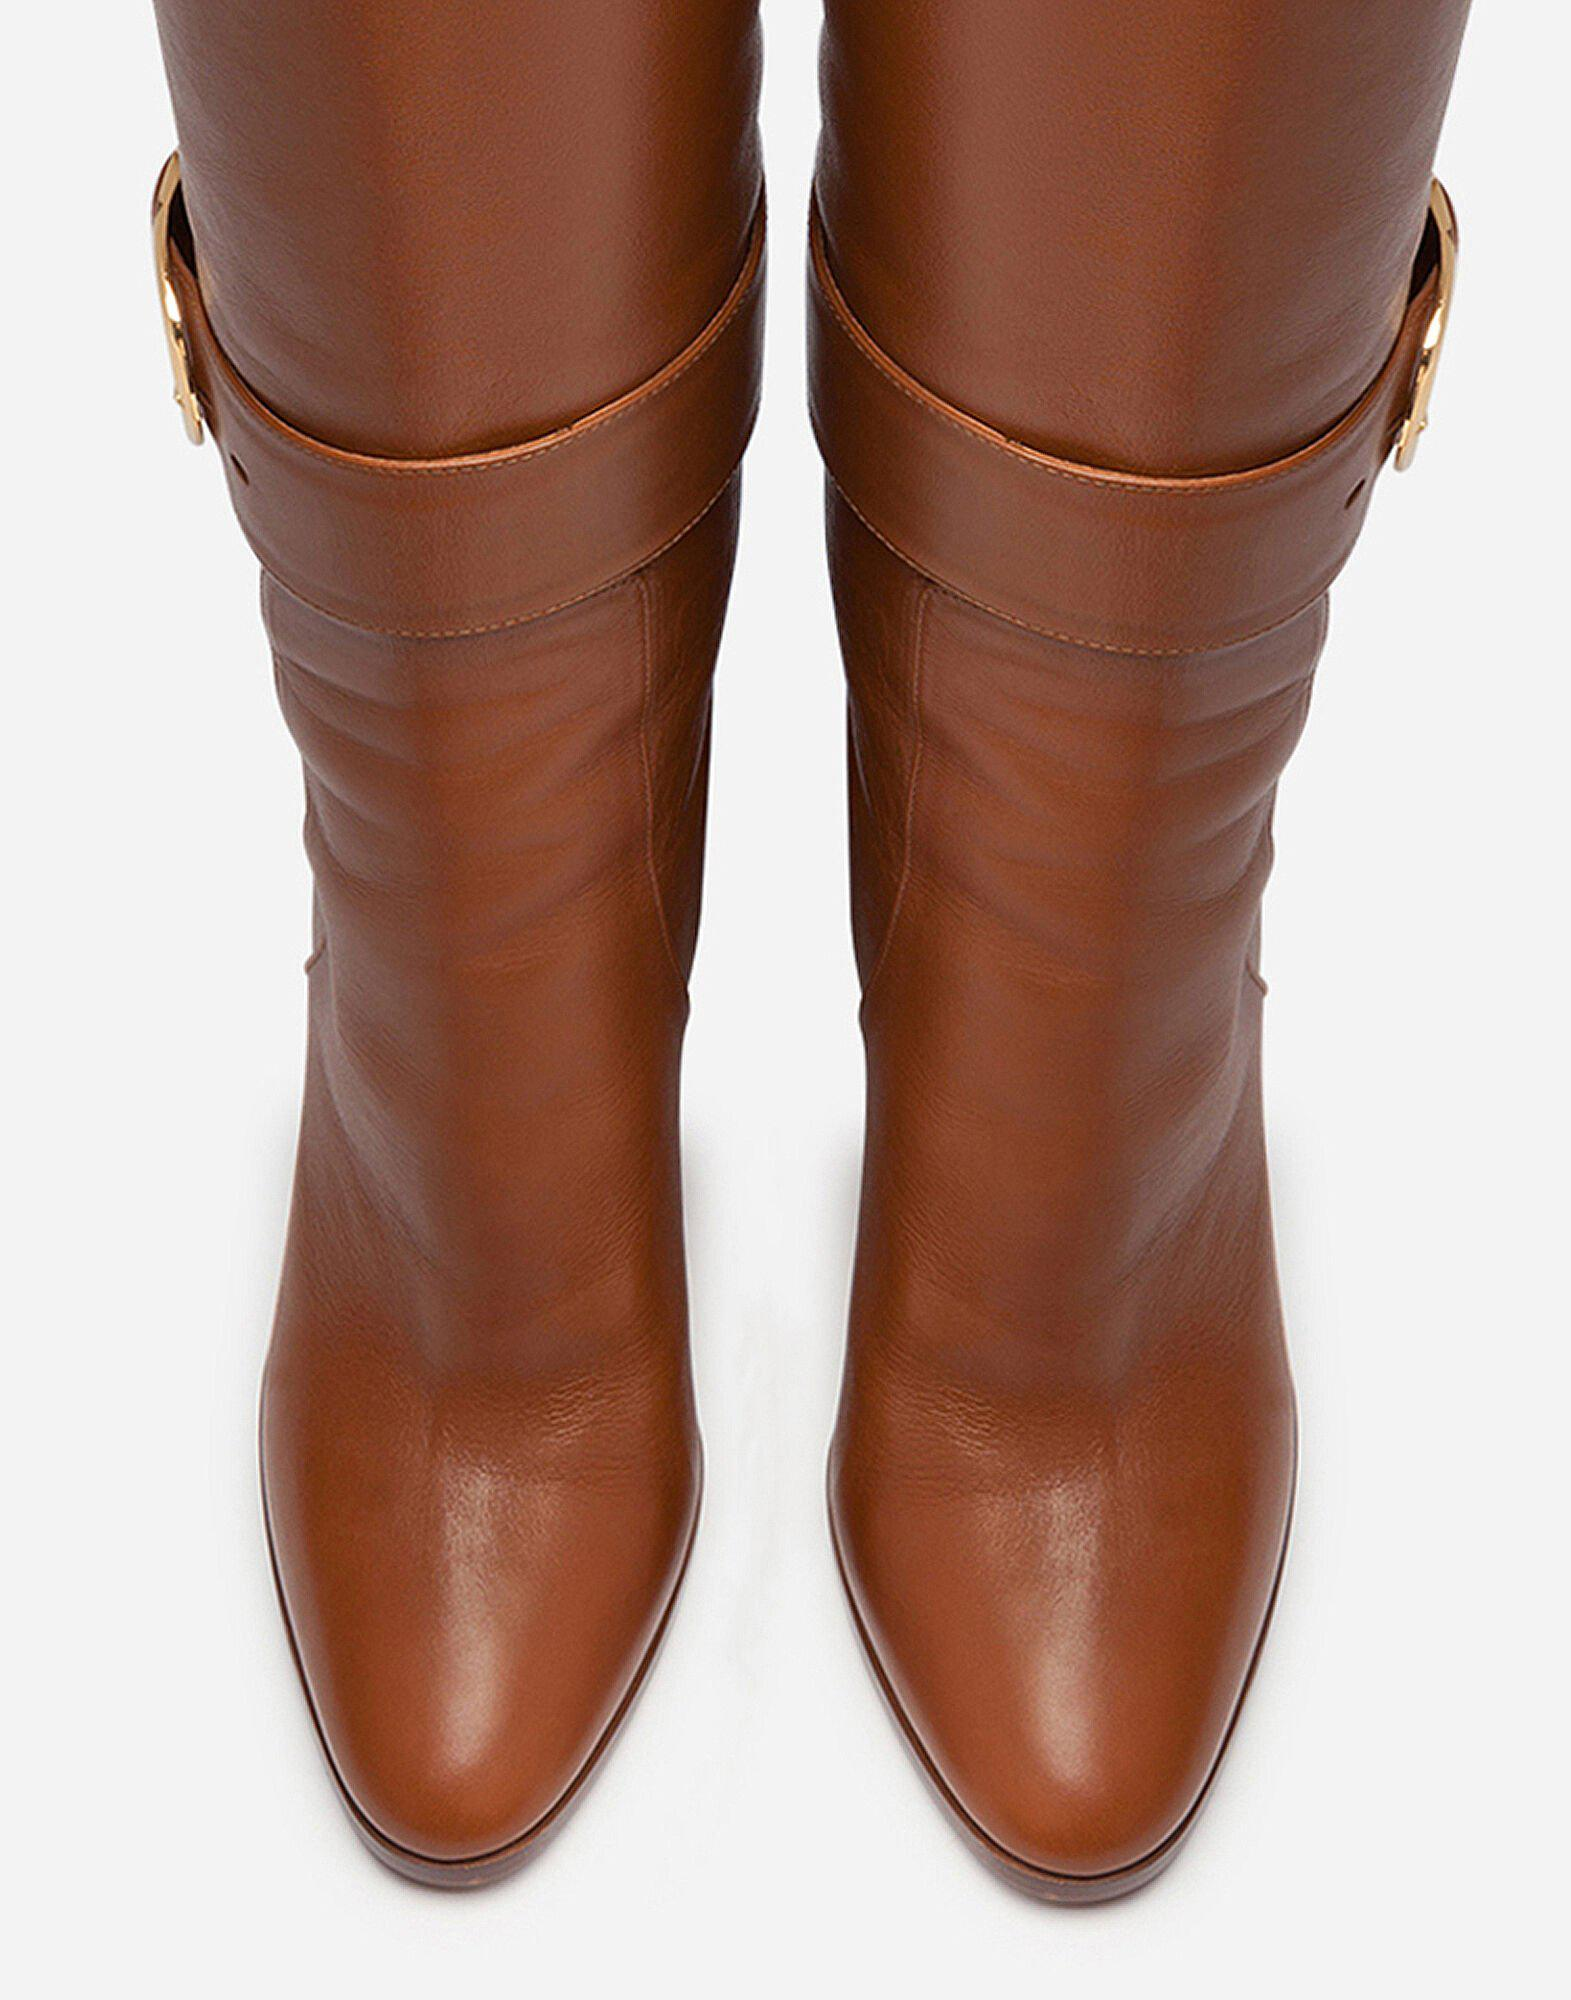 Boots in foulard calfskin with decorative buckle 3